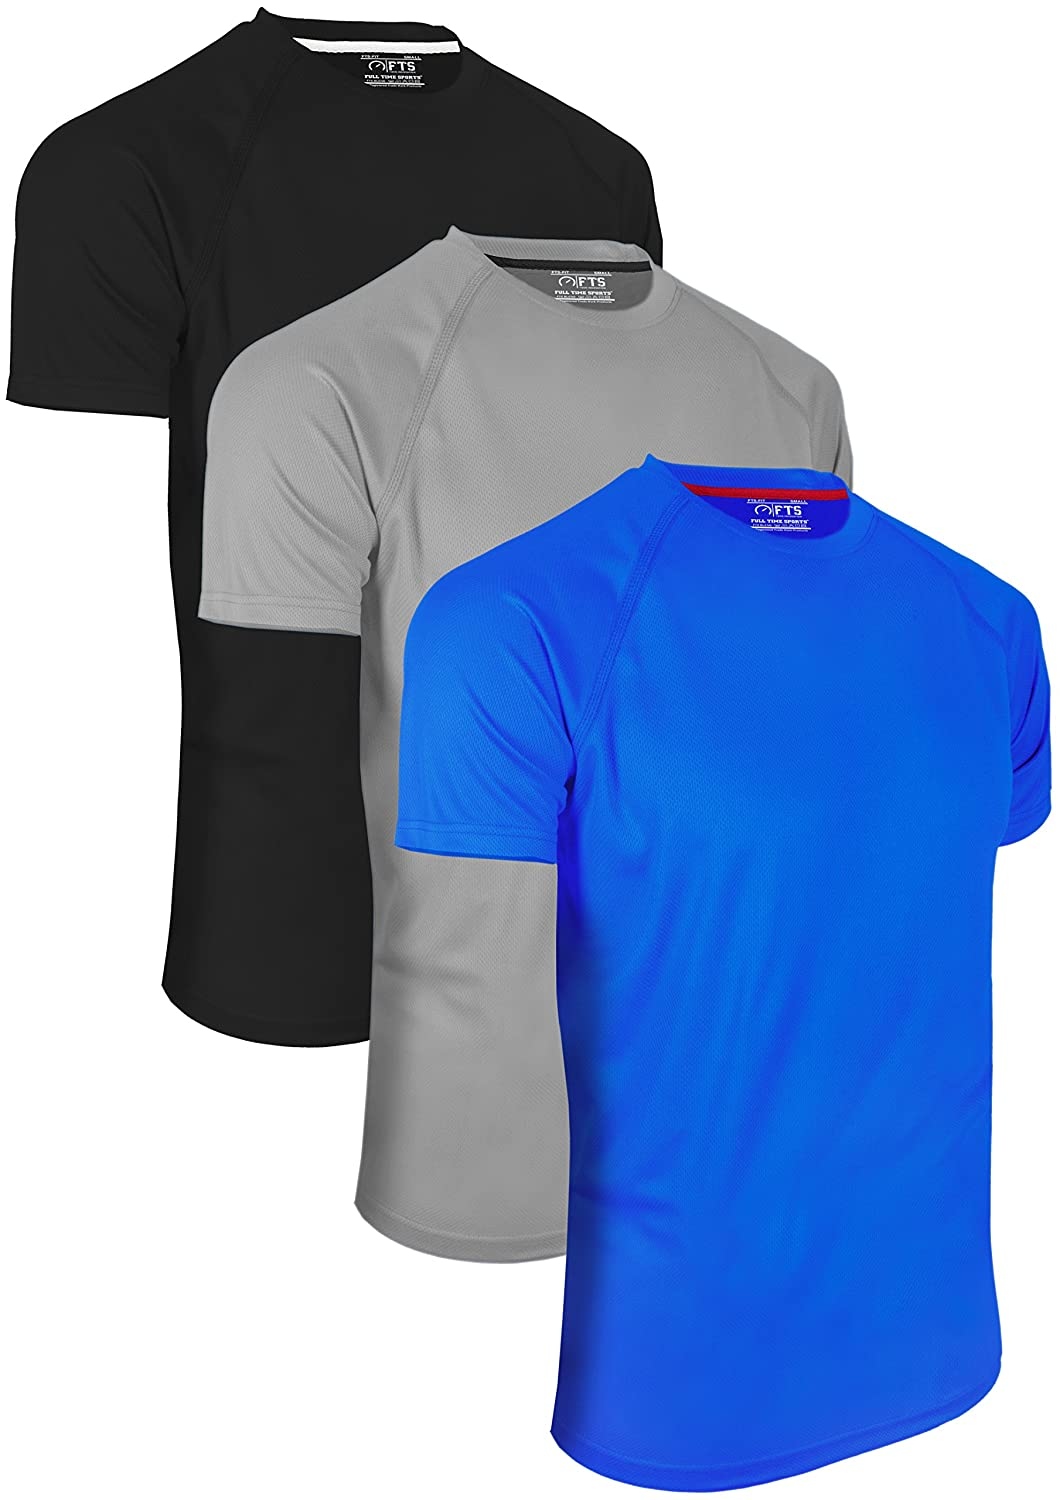 Full Time Sports® Sports® Sports® Tech 3 4 6 Pack Assorted Langarm-, Kurzarm Casual Top Multi Pack Rundhals T-Shirts B07CRKGGQV T-Shirts Großer Verkauf 27a18a